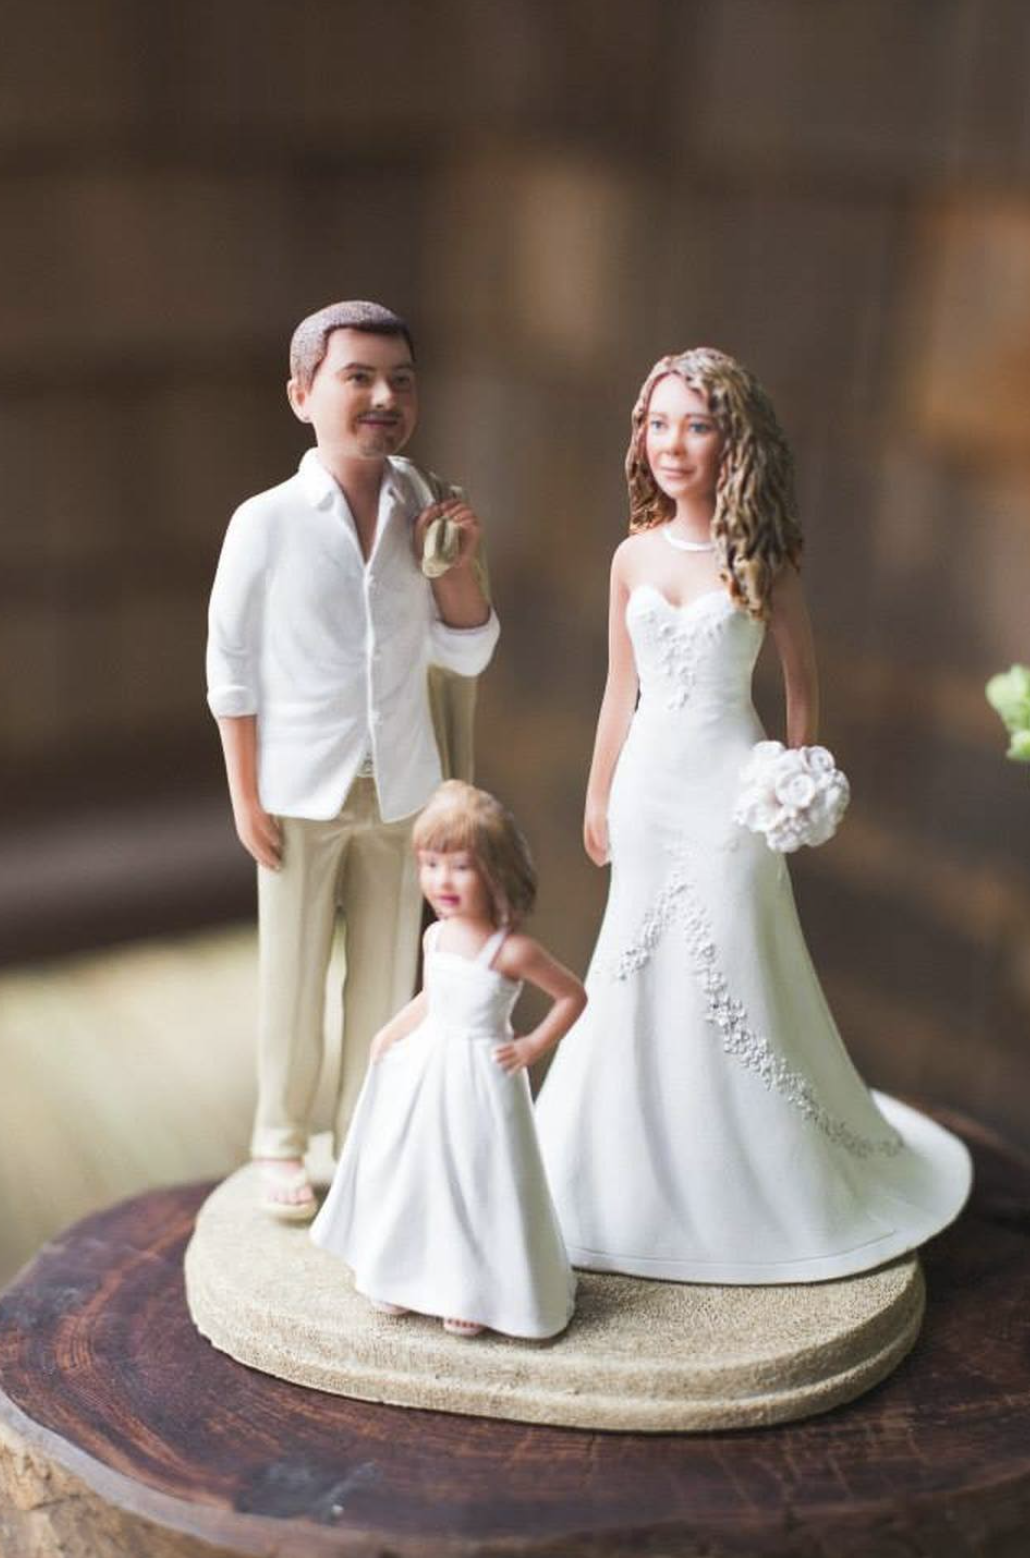 Wedding Cake Toppers with Children